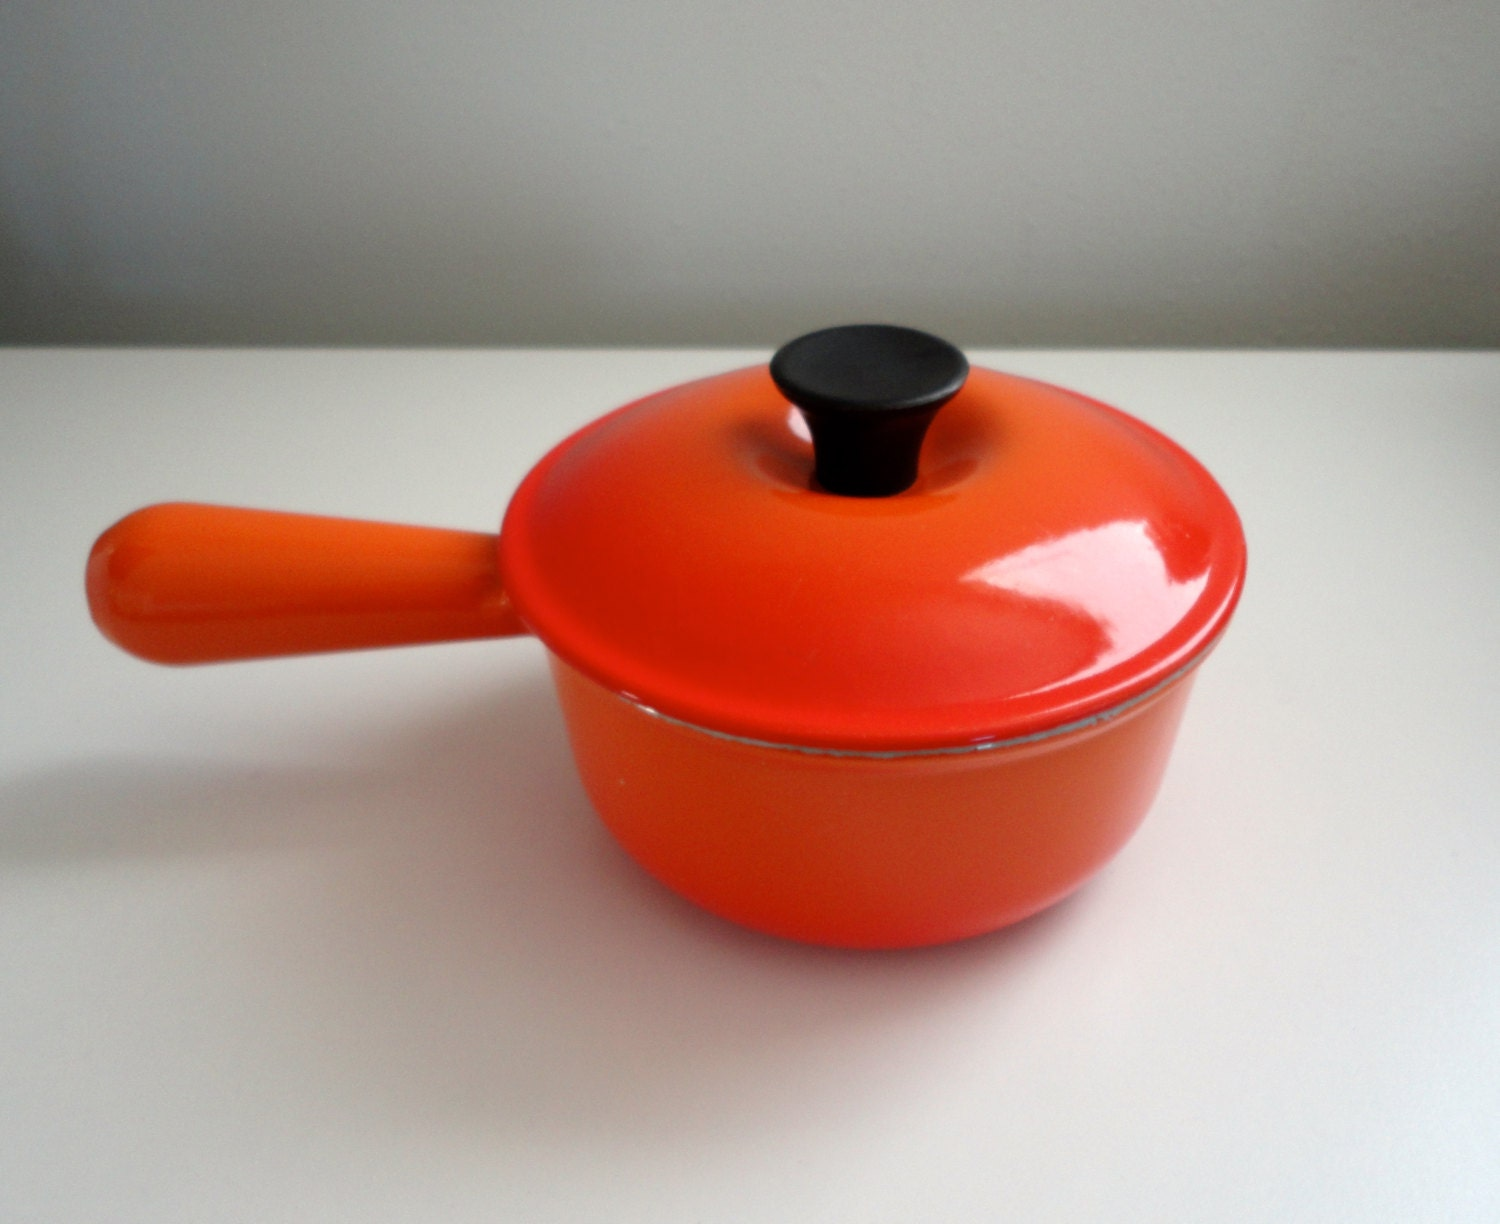 vintage le creuset saucepan marked 14 flame orange red by. Black Bedroom Furniture Sets. Home Design Ideas